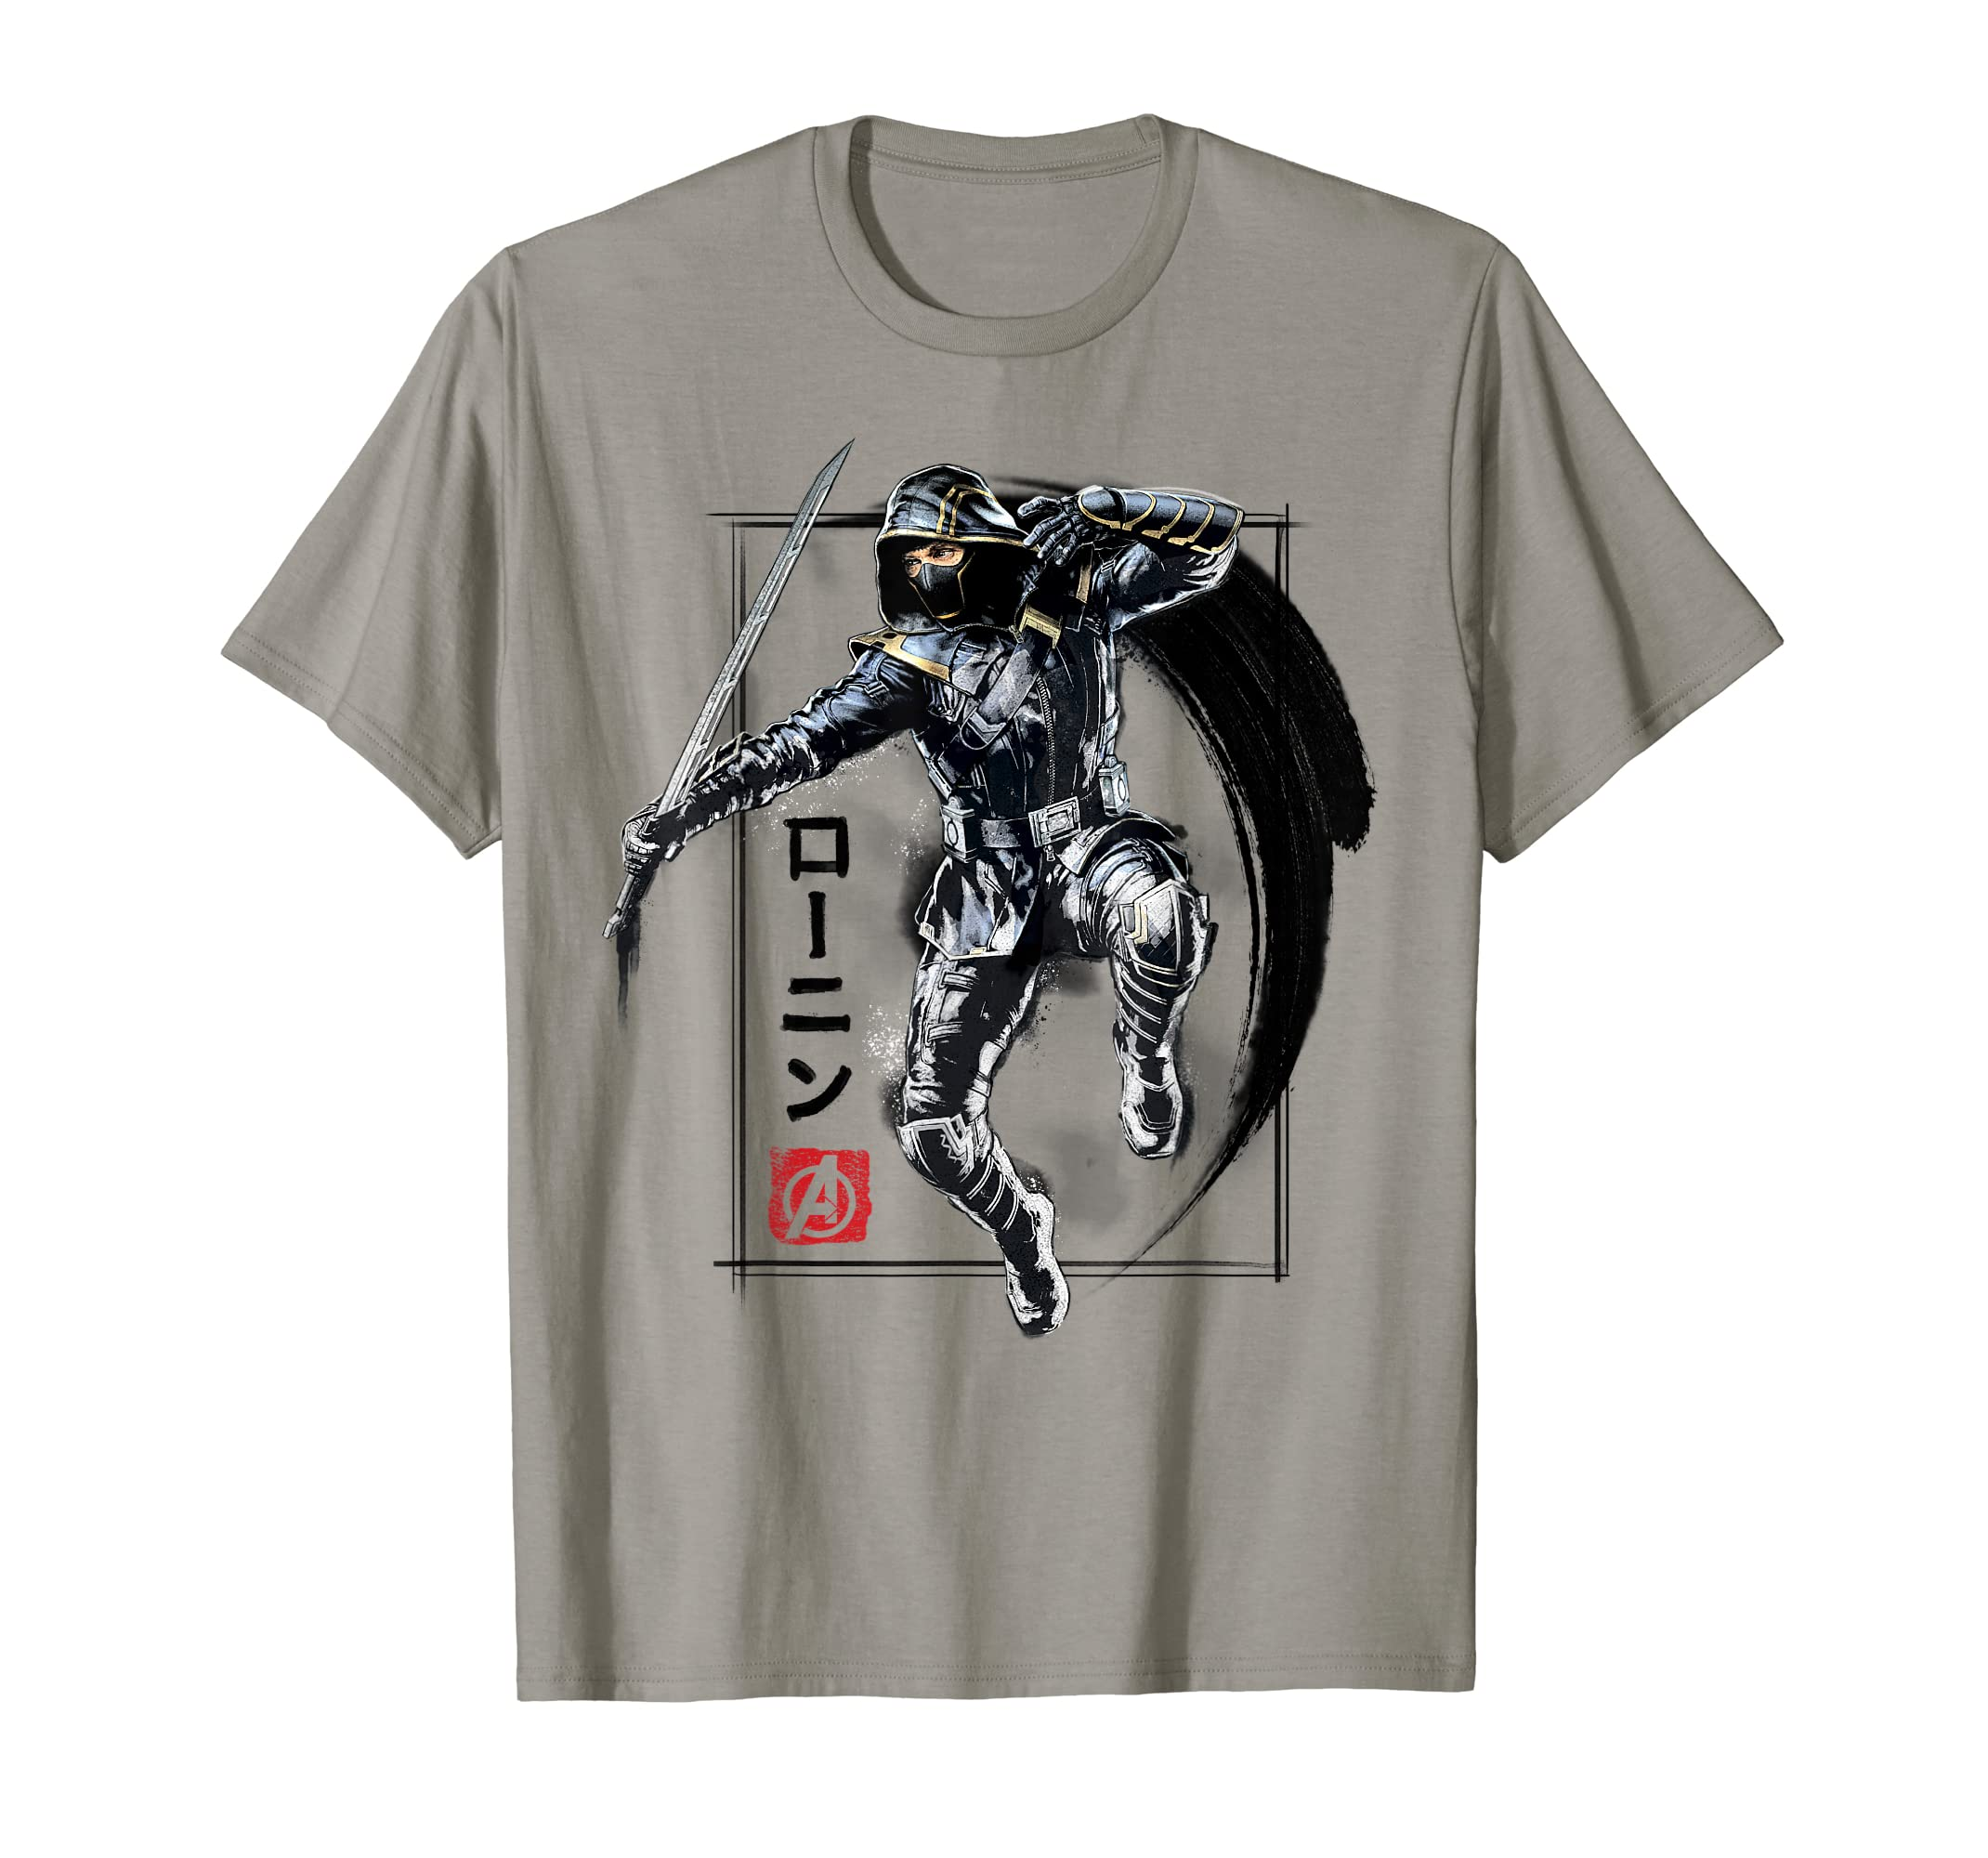 bab620fc7608 Amazon.com: Marvel Avengers Endgame Ronin Poster Graphic T-Shirt: Clothing